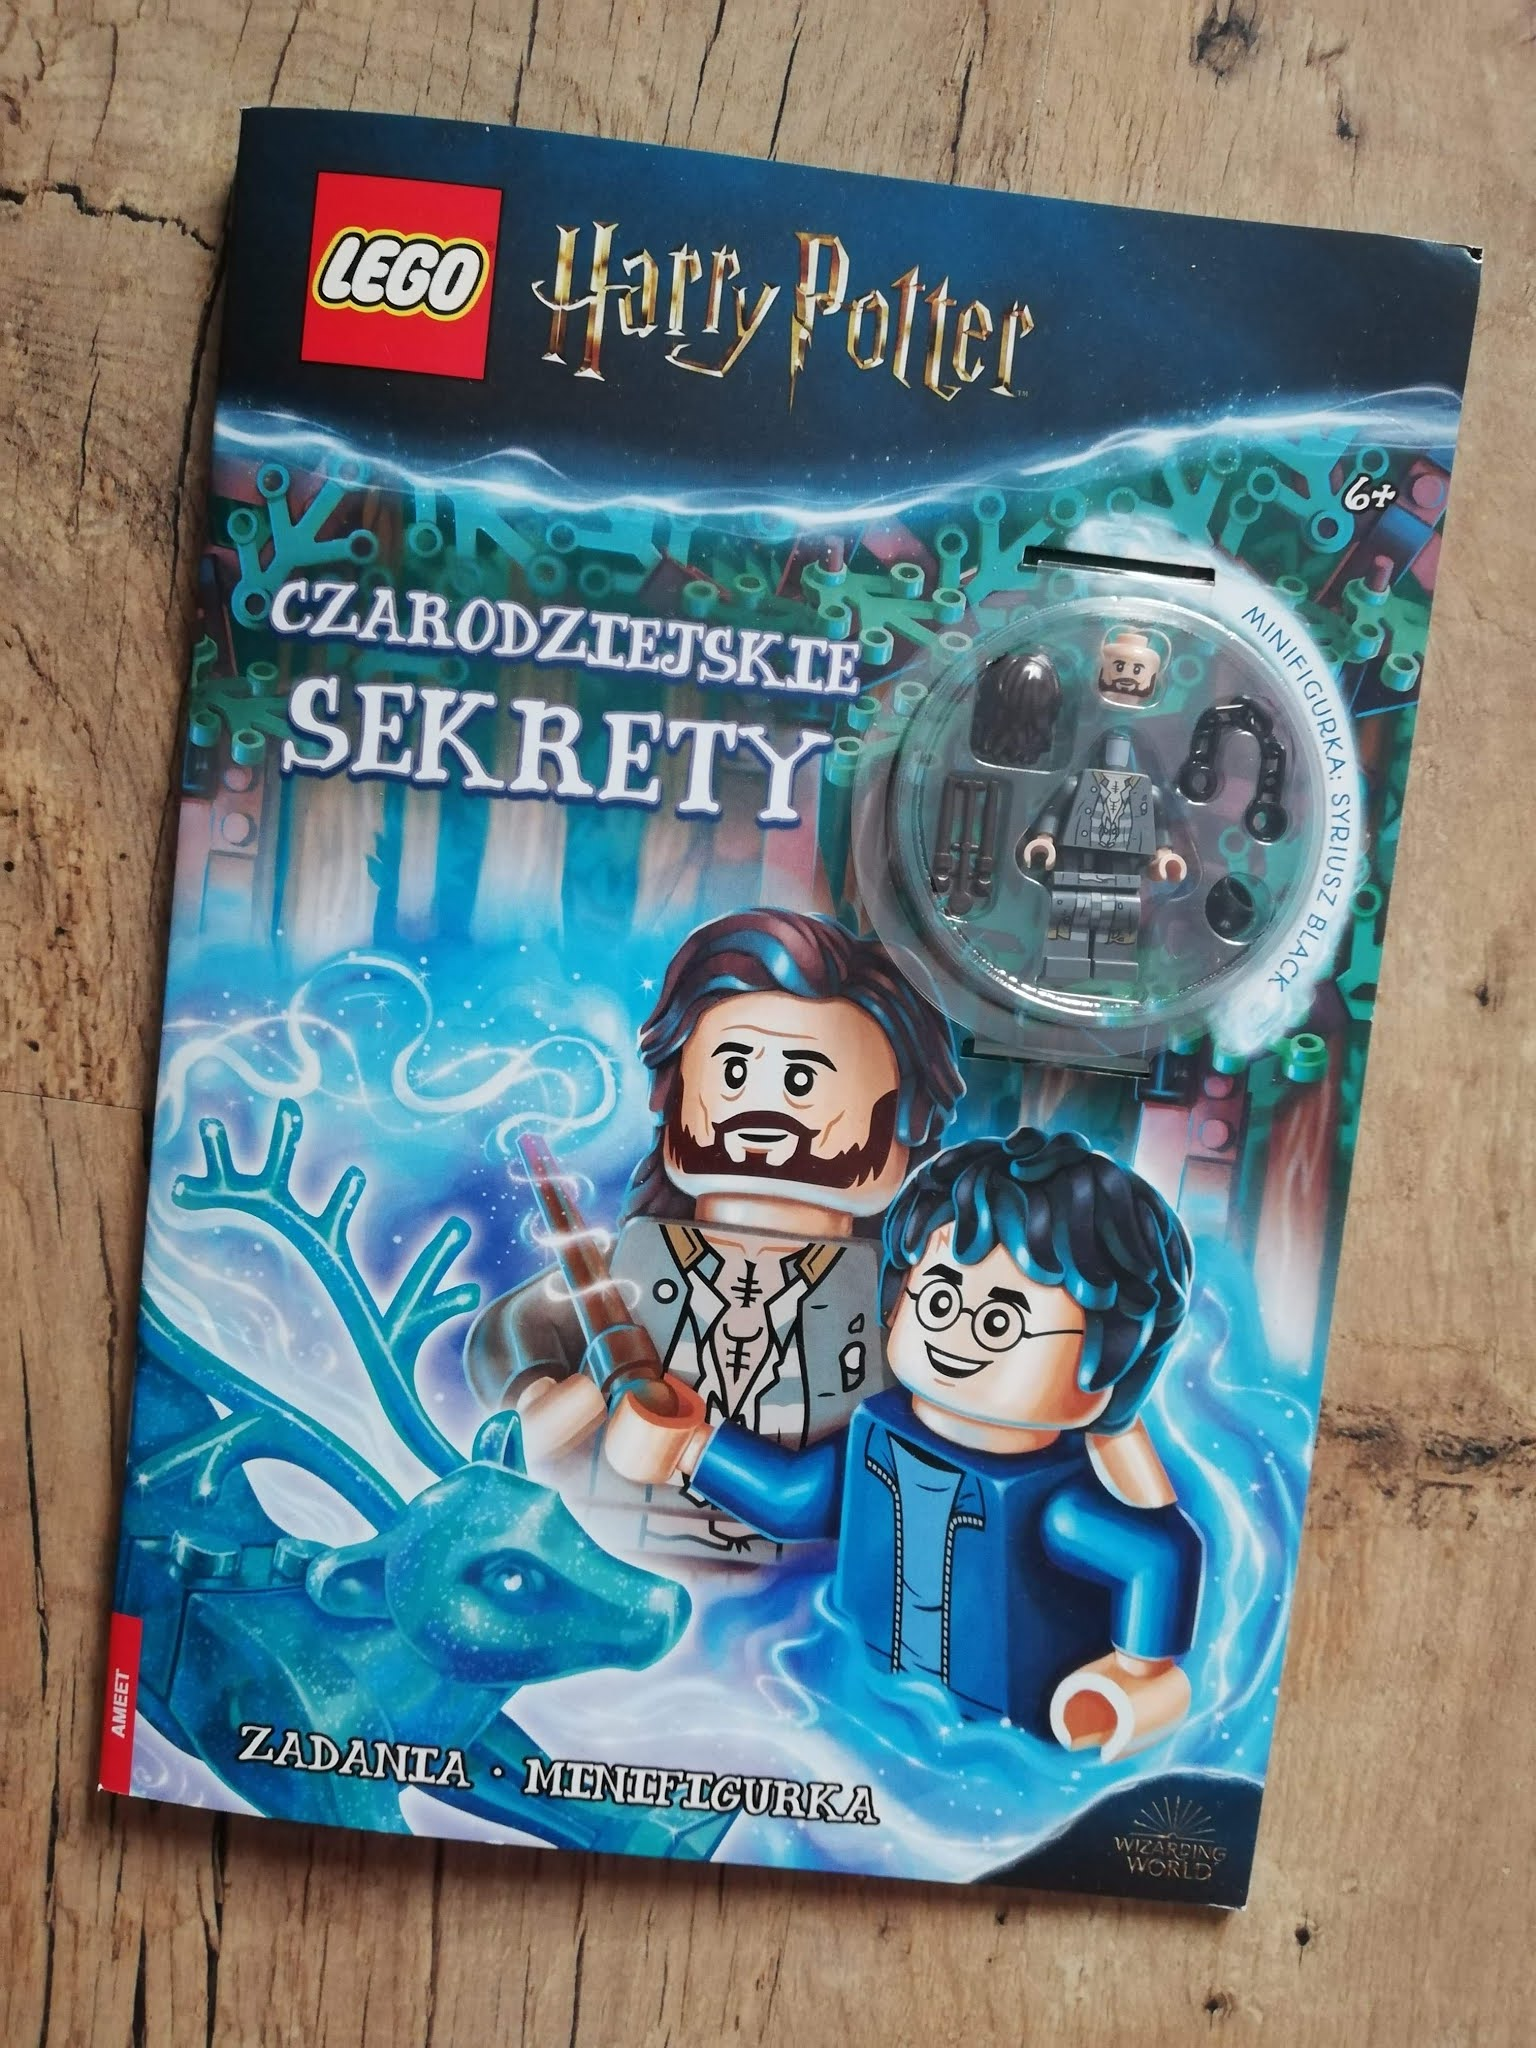 LEGO Harry Potter gazetka